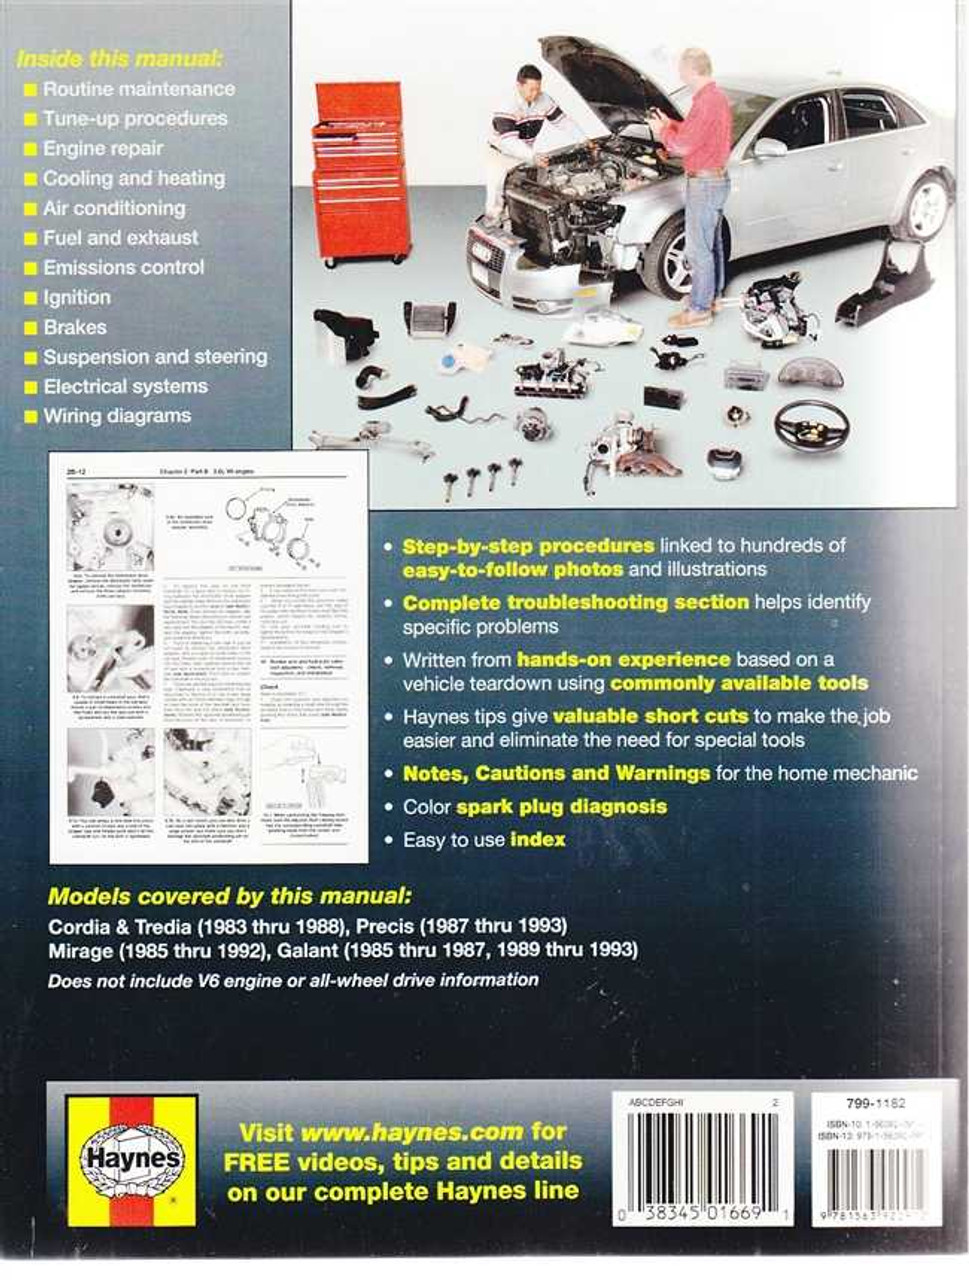 mitsubishi cordia tredia precis mirage galant 1983 1993 workshop manual rh automotobookshop com au Mitsubishi Montero Sport Engine Diagram 2002 Mitsubishi Galant Parts Diagram